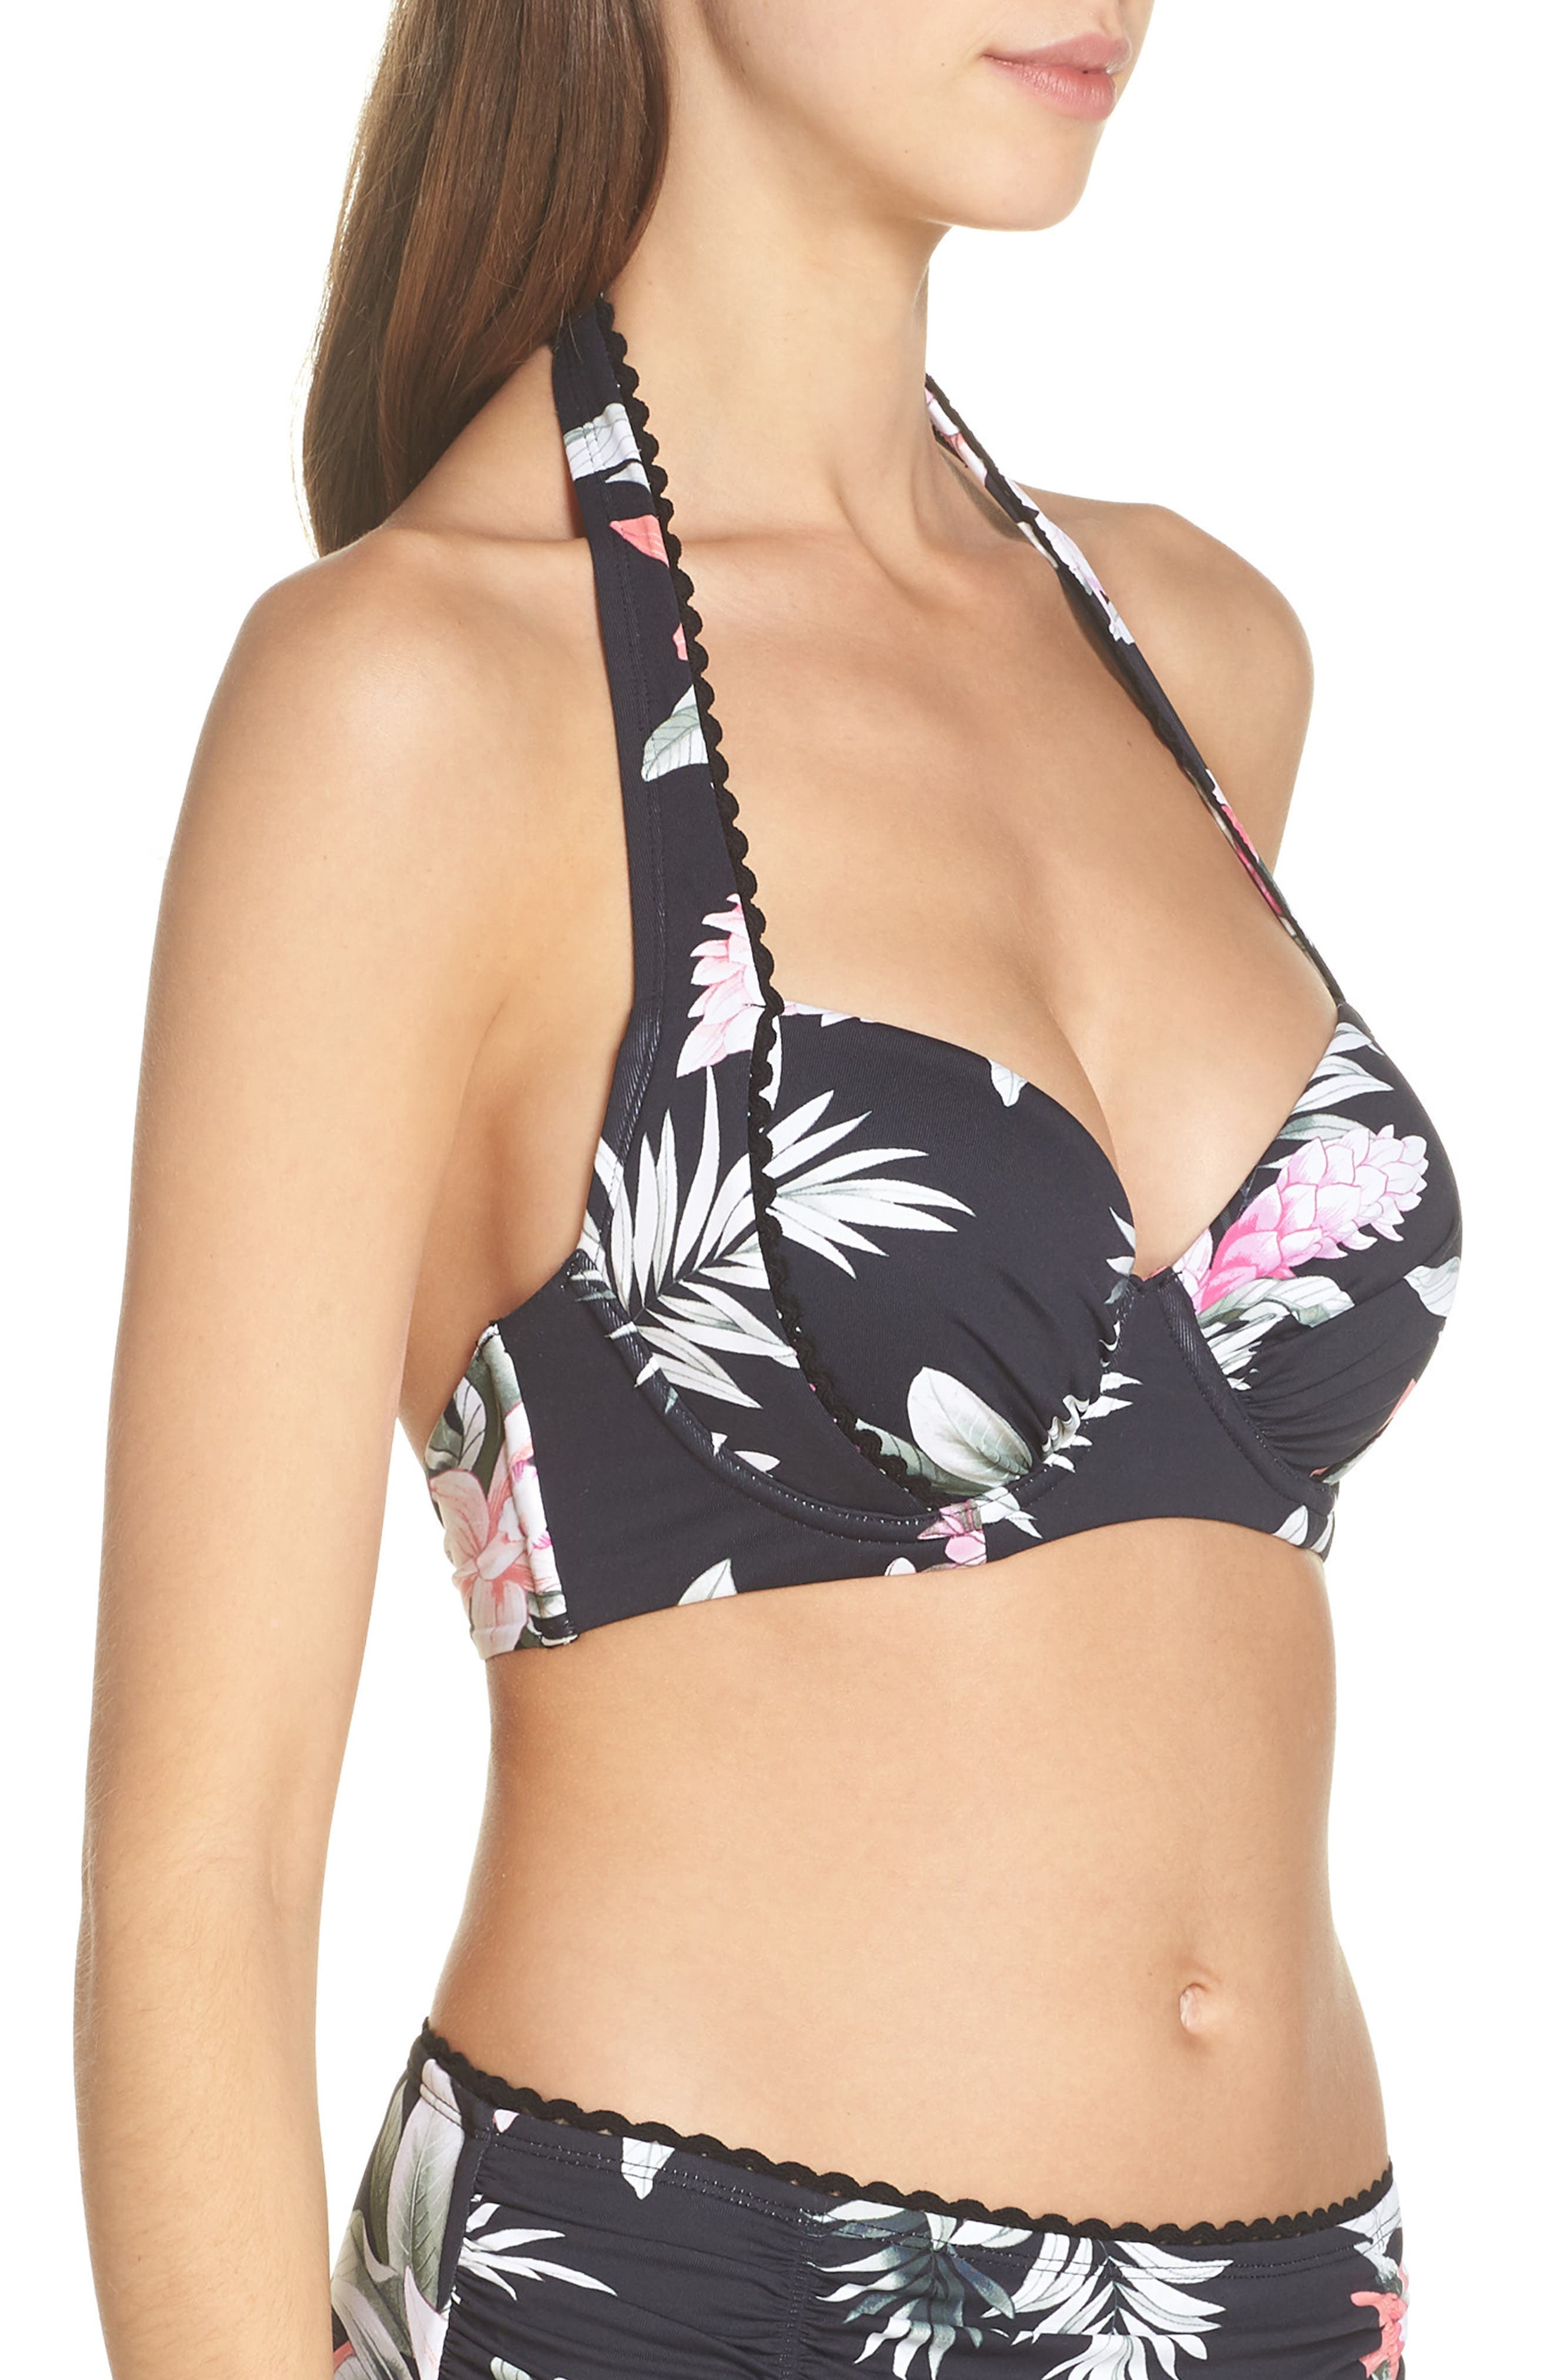 Ginger Flowers Underwire Bikini Top,                             Alternate thumbnail 3, color,                             BLACK